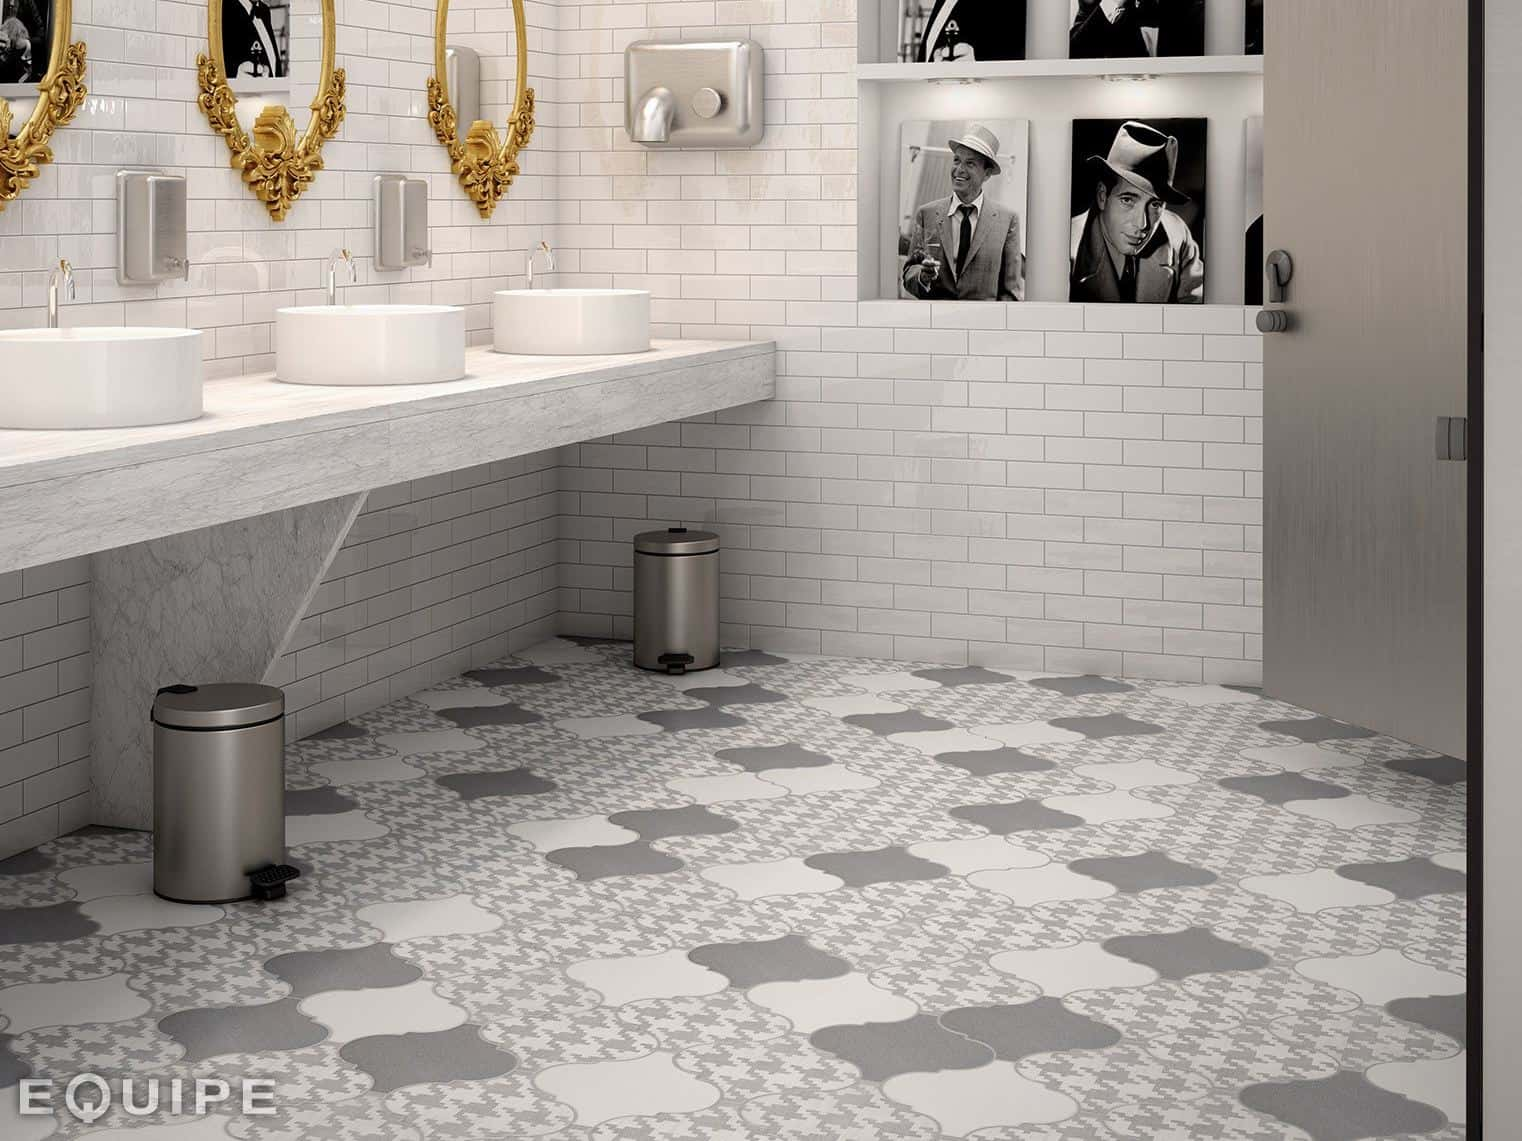 arabesque tile ideas for floor wall and backsplash - view in gallery arabesquetilefloorbathroomgreywhite